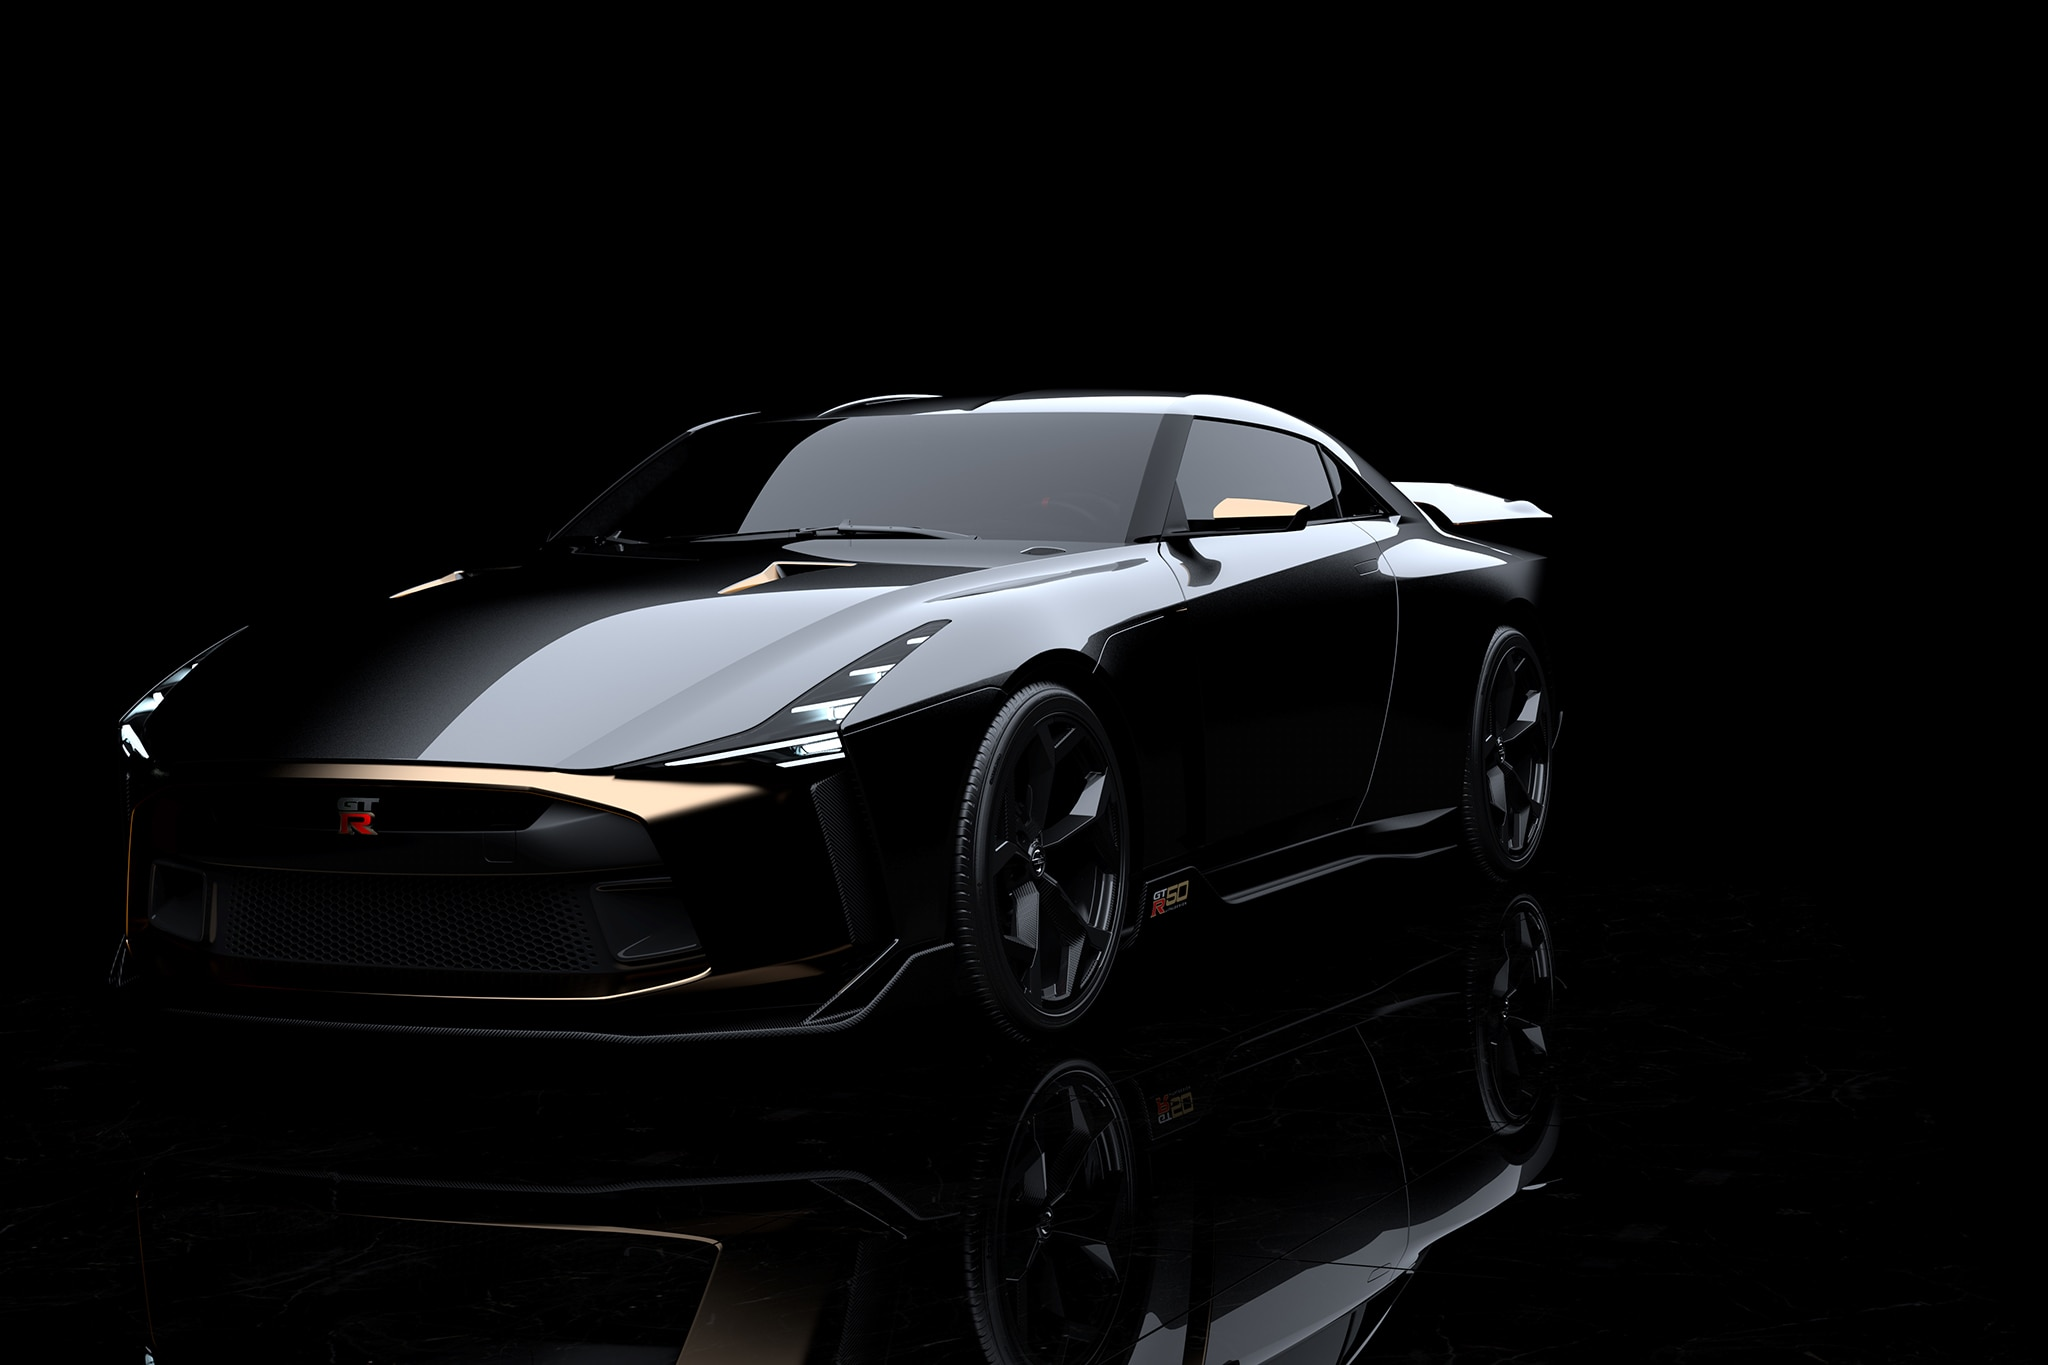 2017 Nissan Gt R Msrp >> Nissan GT-R50 by Italdesign is Bellissimo | Automobile ...